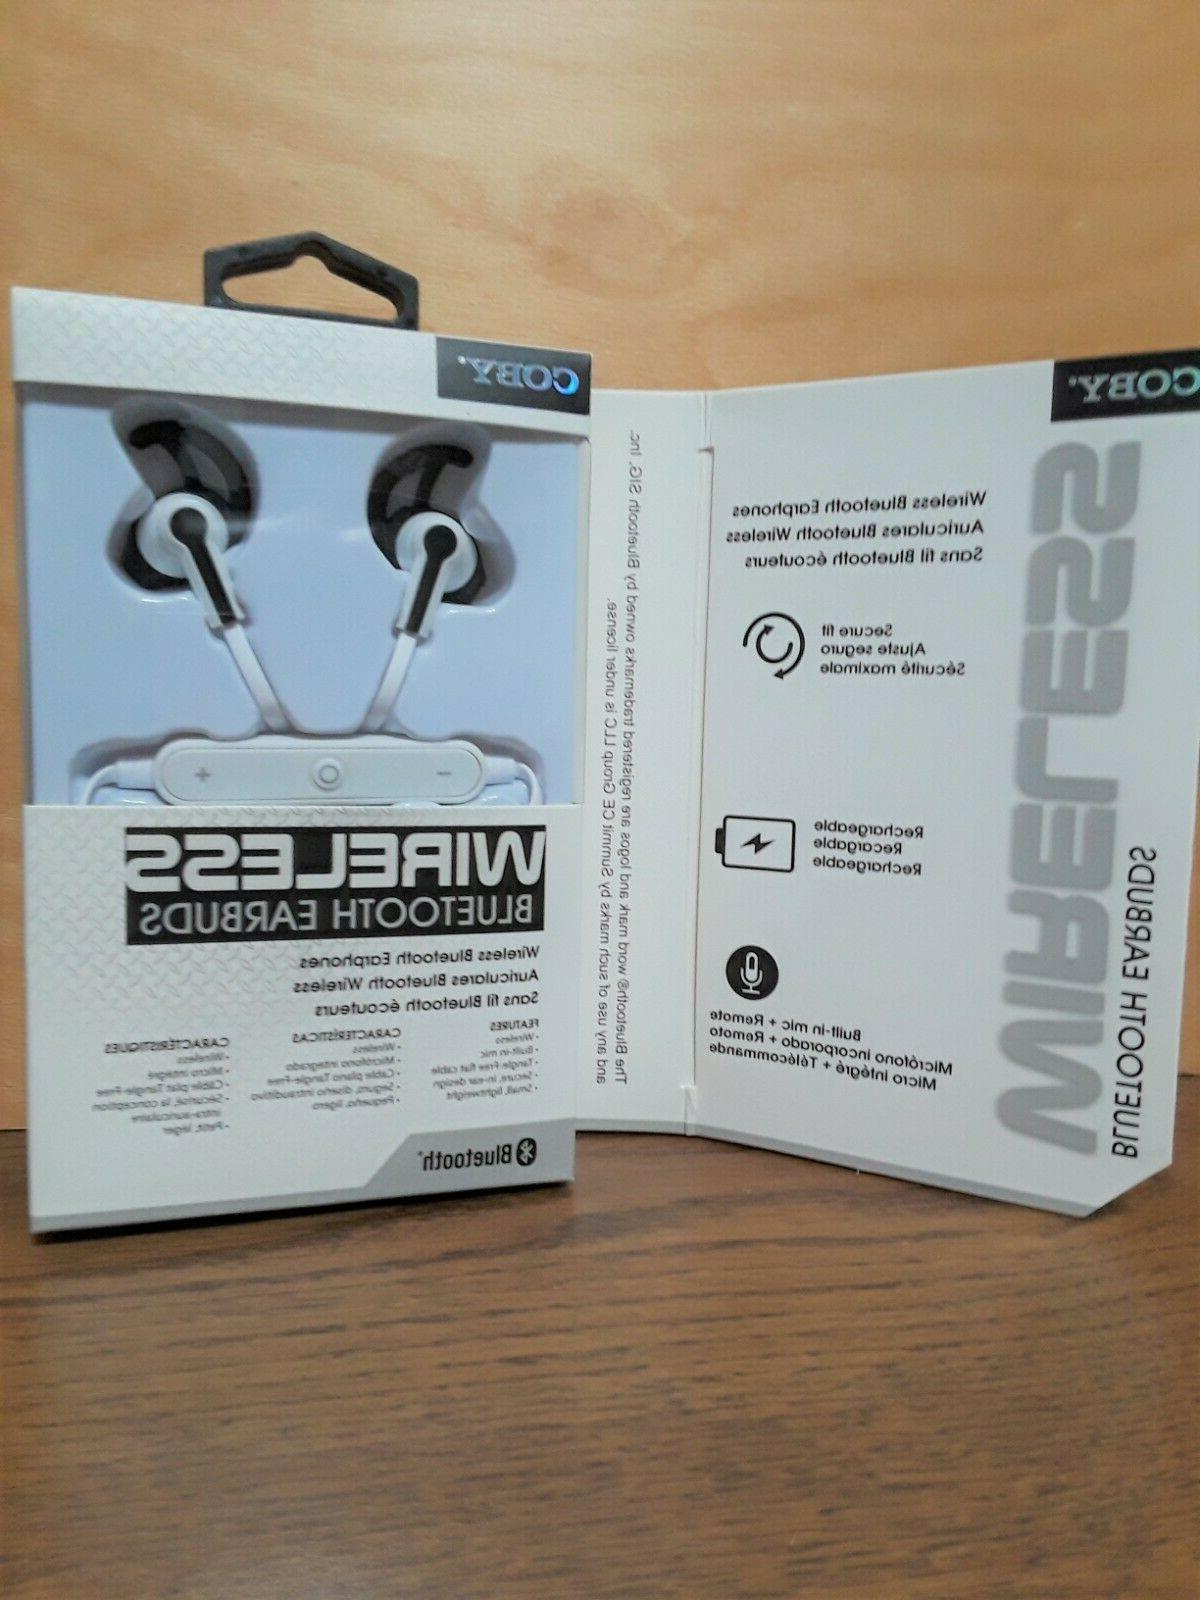 Coby WIRELESS Earbuds w/Built-In Mic - White, Red or